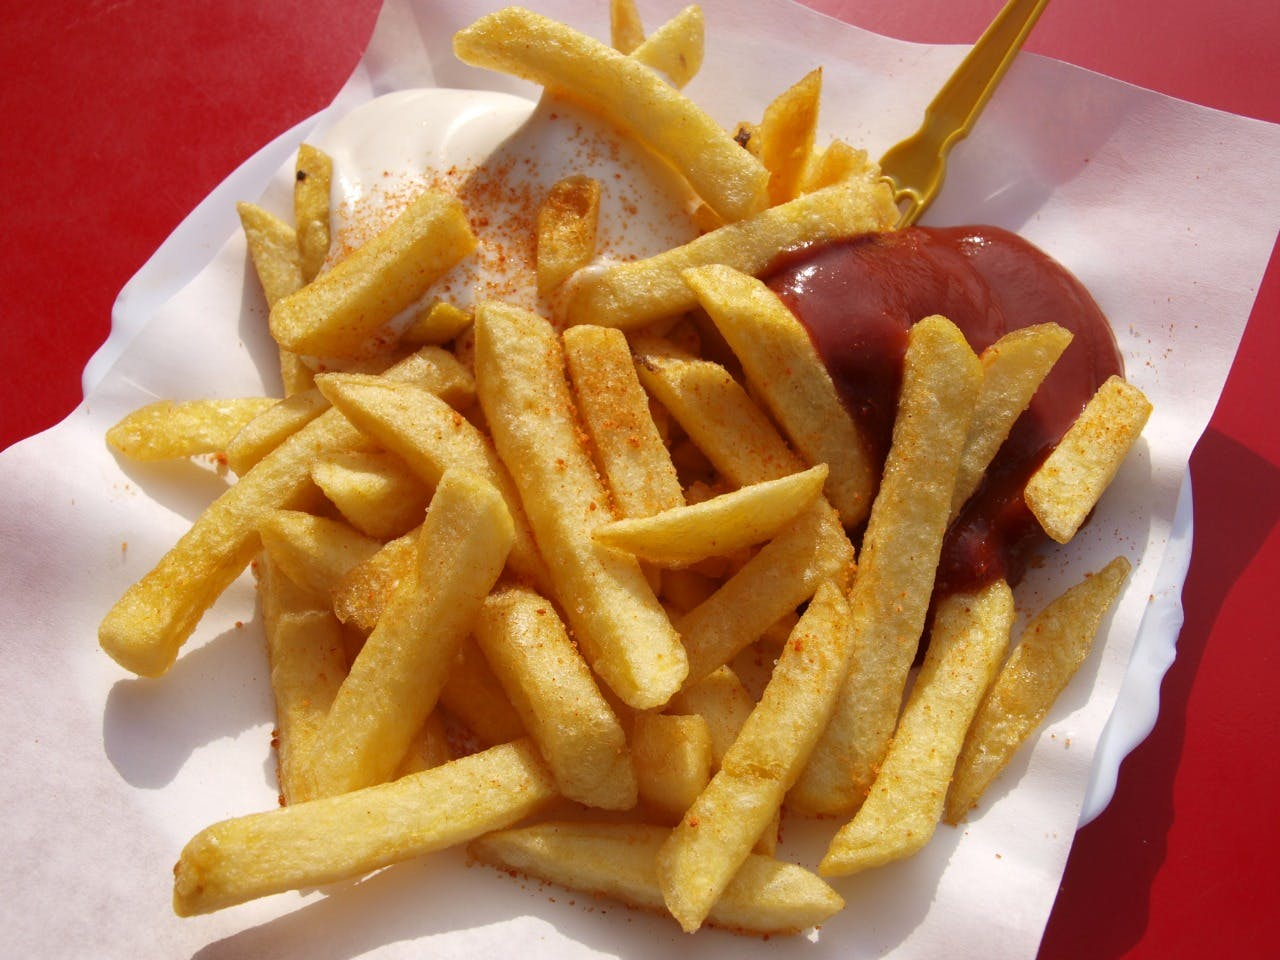 Dish,Food,French fries,Cuisine,Fast food,Junk food,Fried food,Deep frying,Kids' meal,Side dish